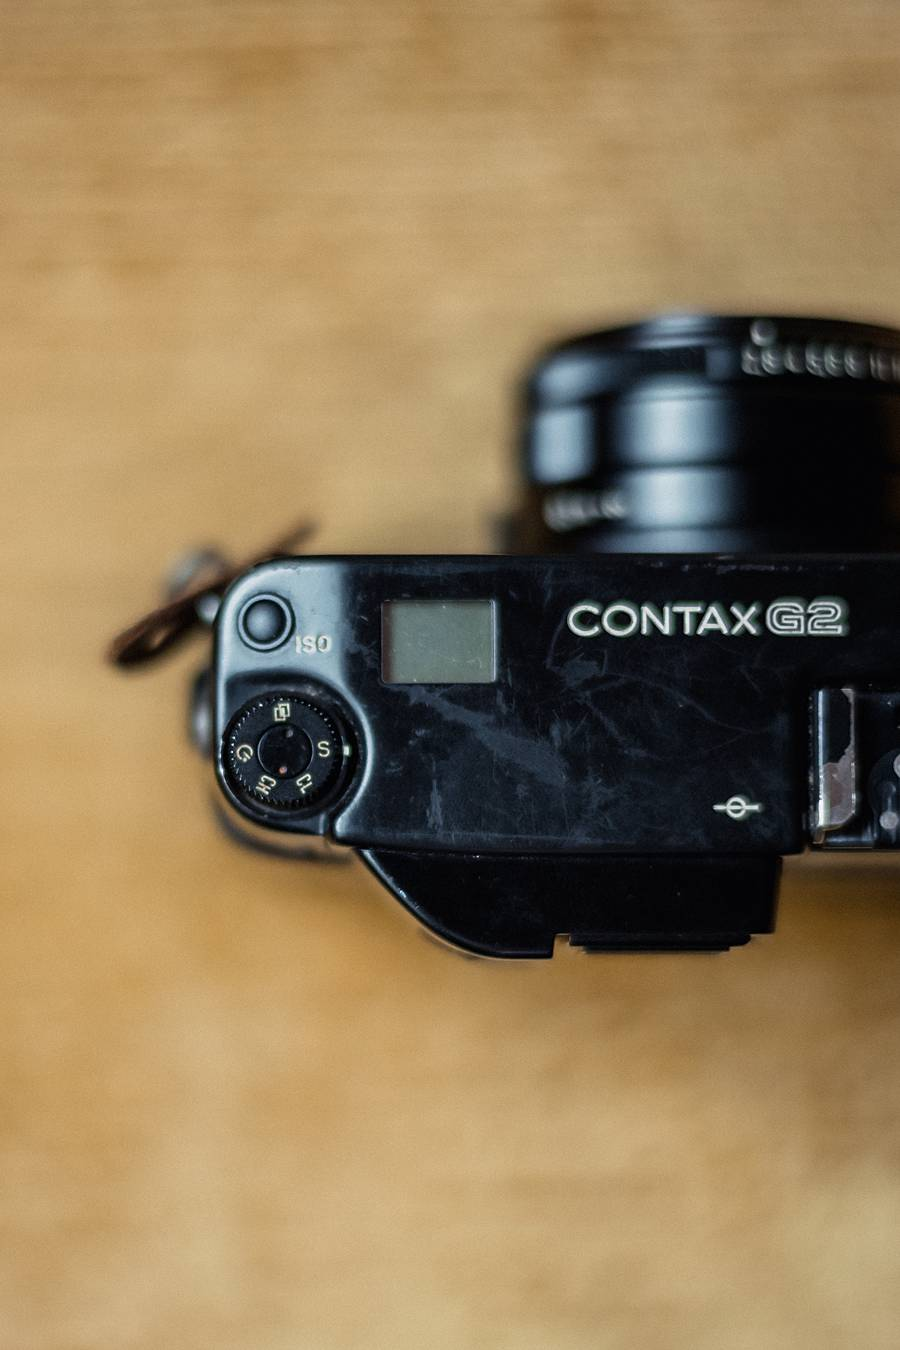 contax g2 35mm film review rangefinder camera for sale 22_web